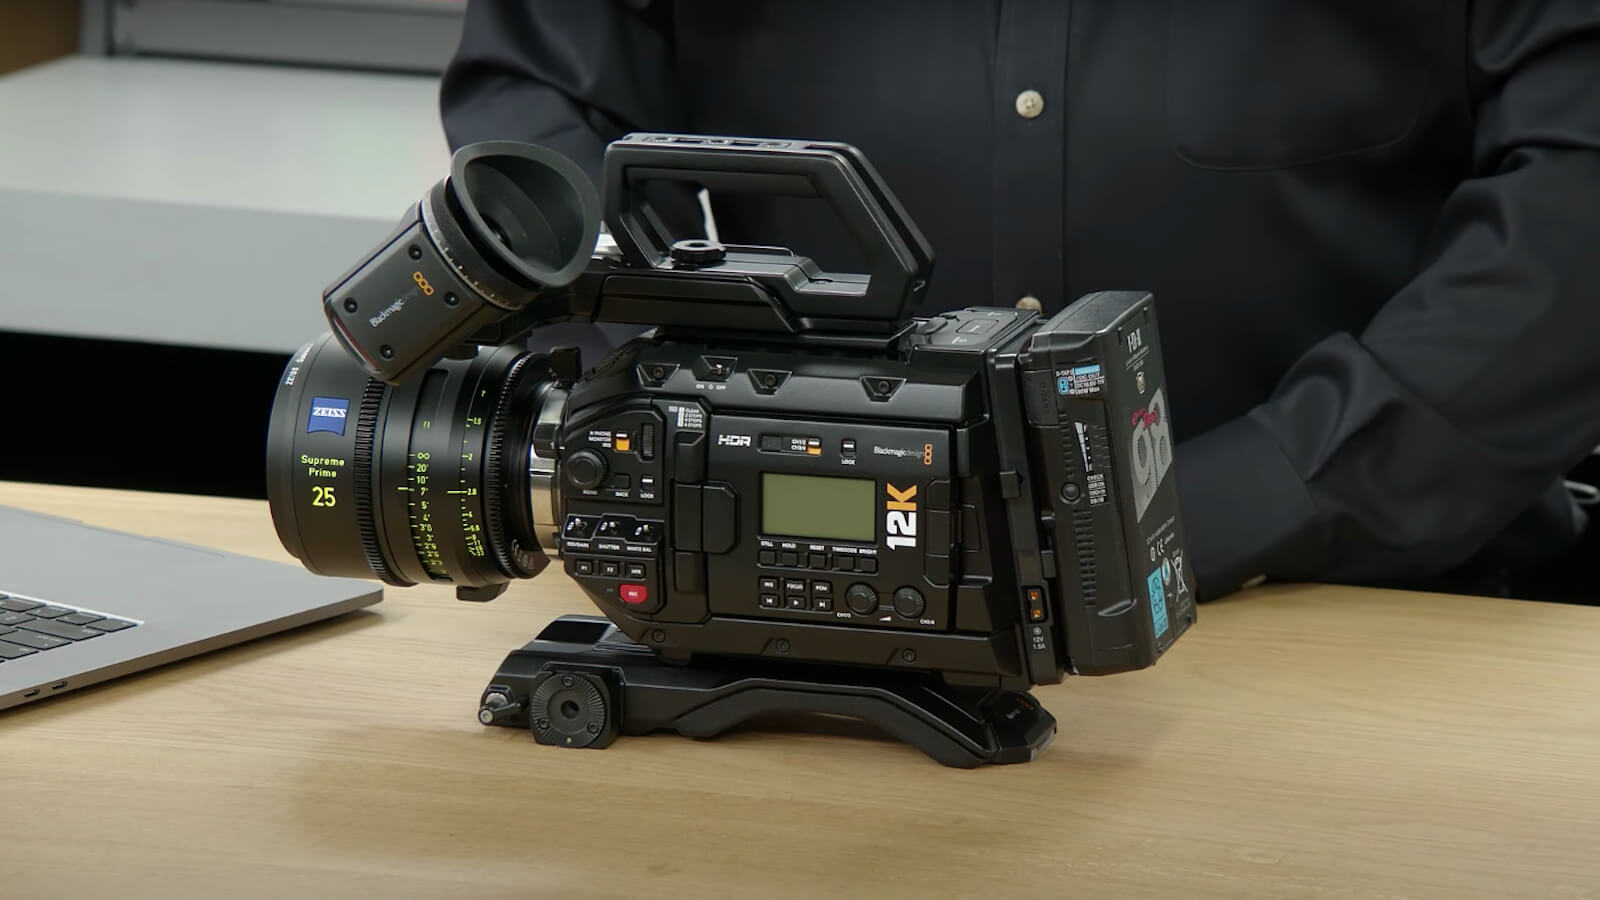 Blackmagic Design URSA Mini Pro 12K Digital Film Camera uses advanced image technology